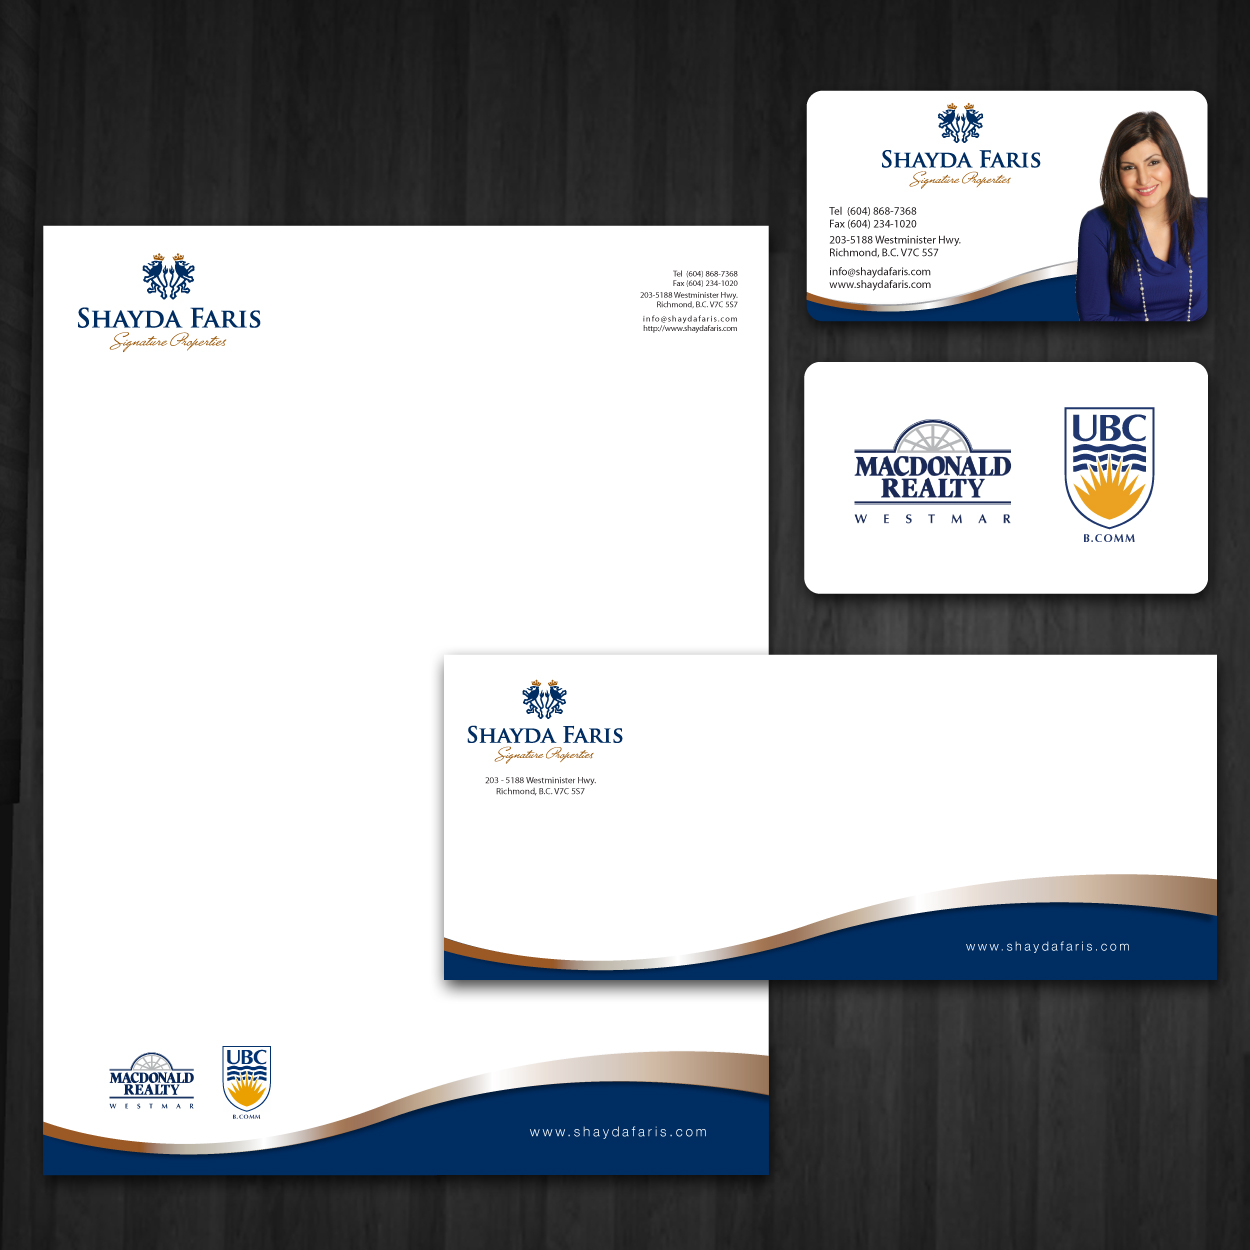 Canada real estate business card designg 12501250 business canada real estate business card designg 12501250 reheart Images